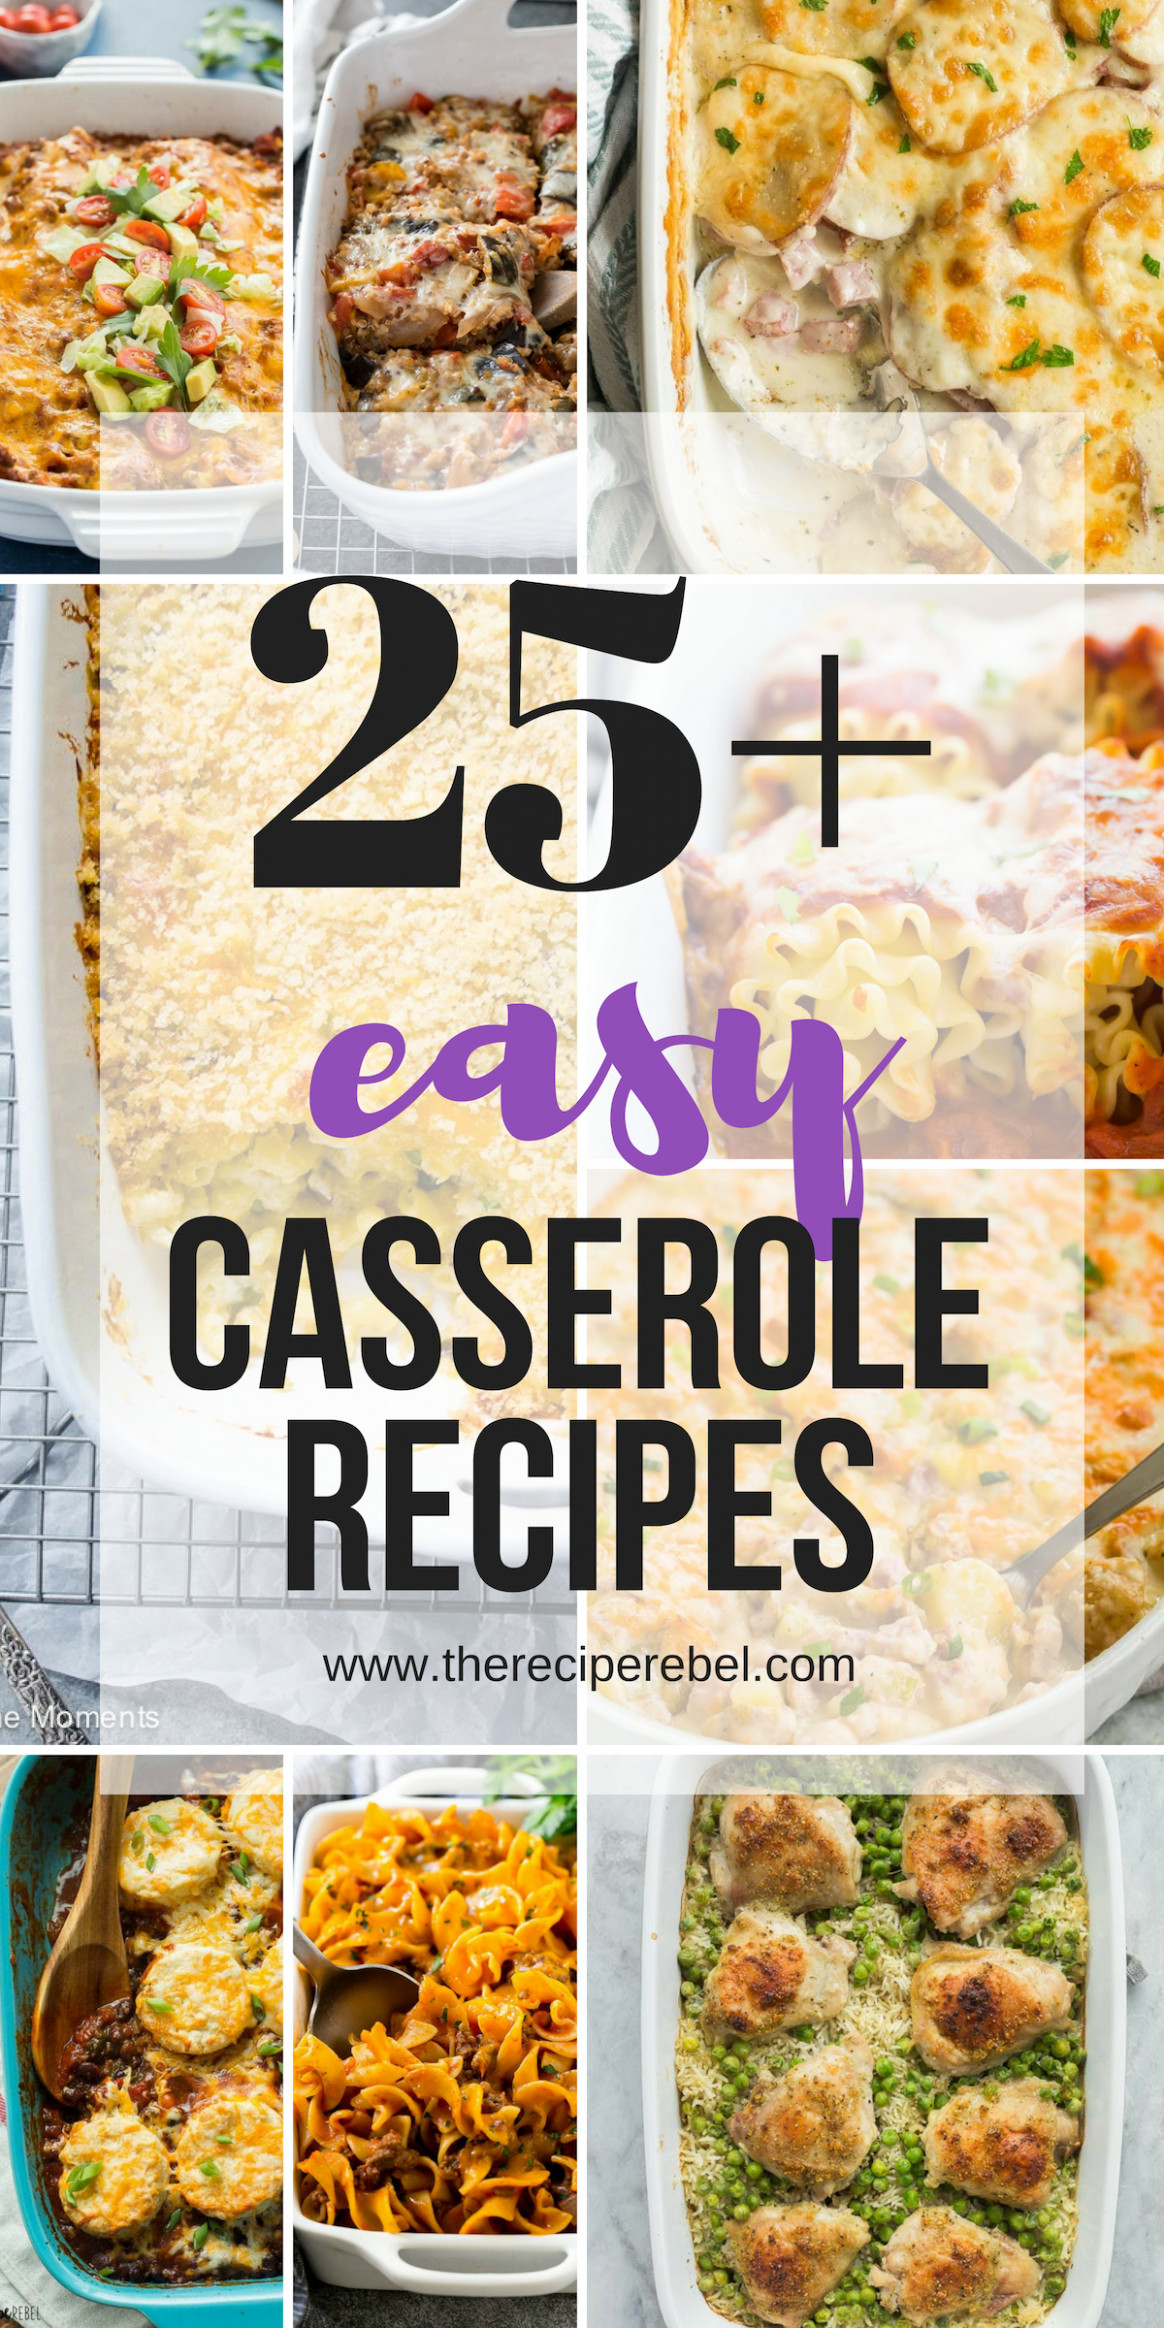 12+ Easy Casserole Recipes - Make Ahead Friendly! - The ..